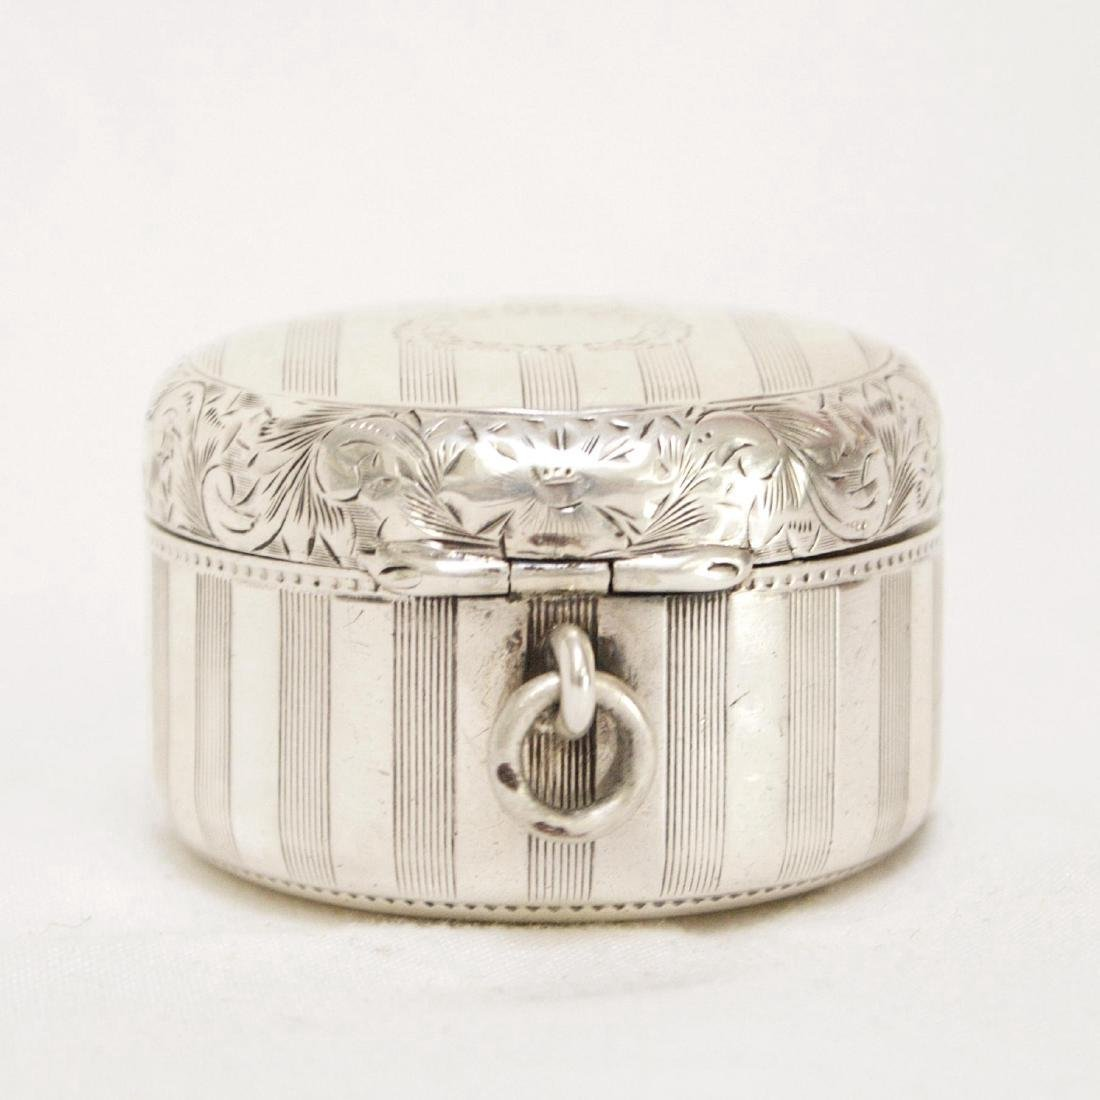 Antique Sterling Silver Rouge Pot with Mirror, 1880 - 3